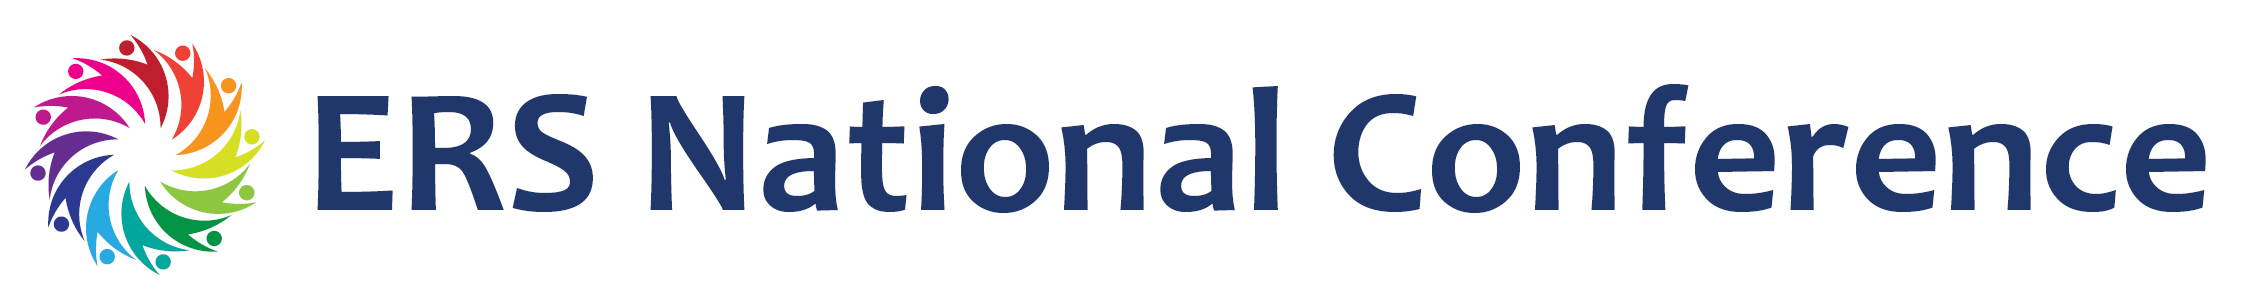 ers national conference logo